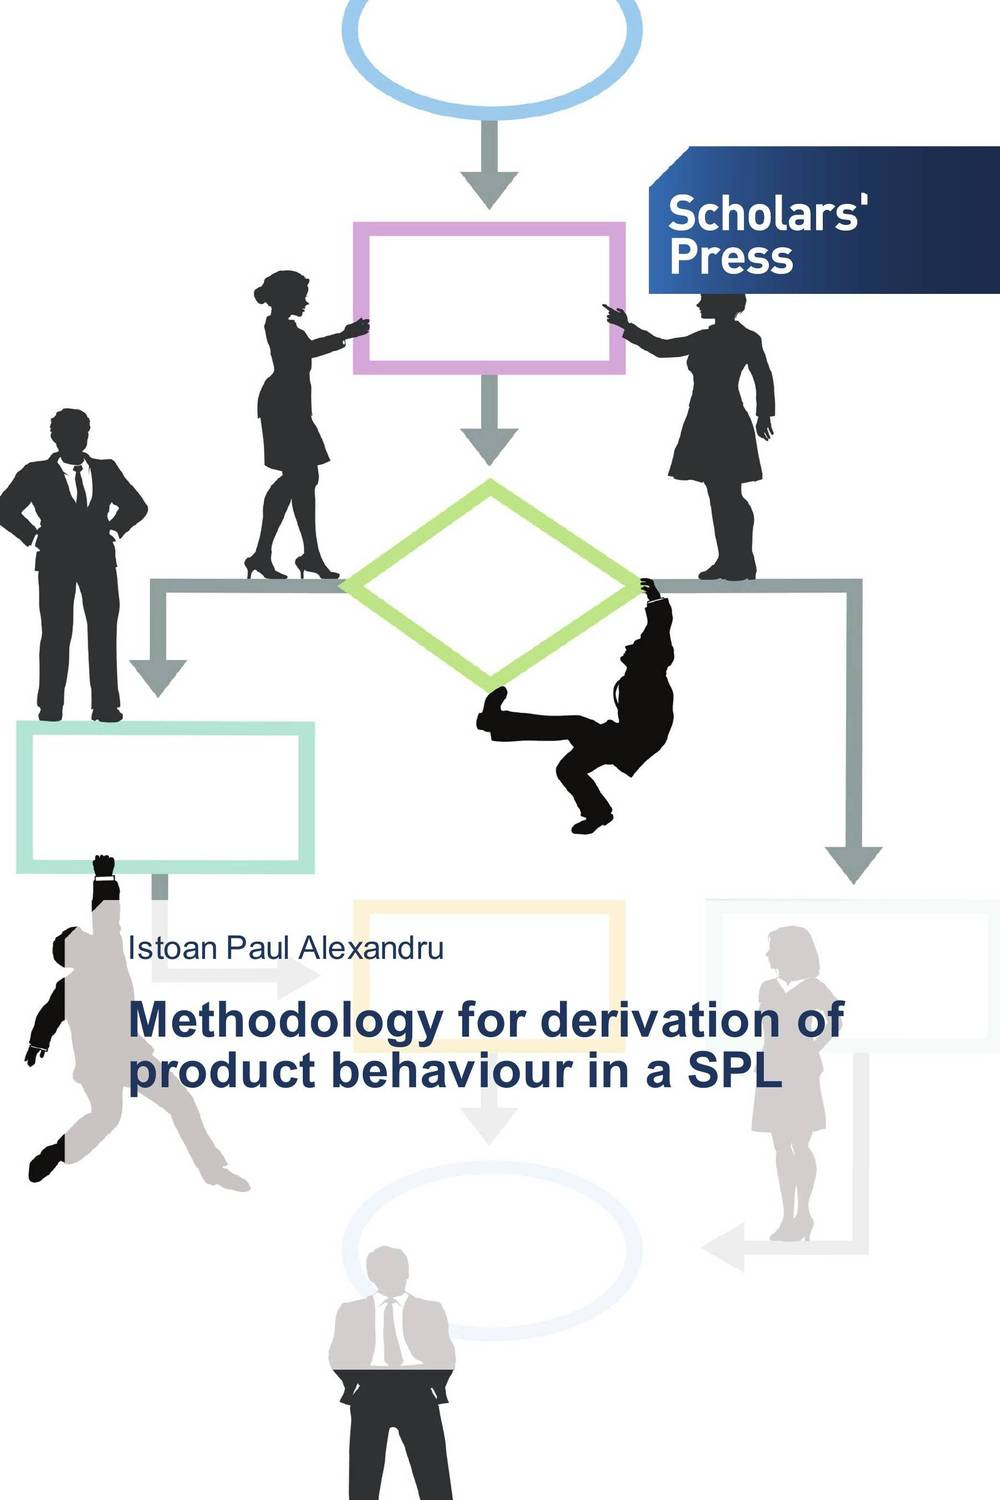 Methodology for derivation of product behaviour in a SPL driven to distraction